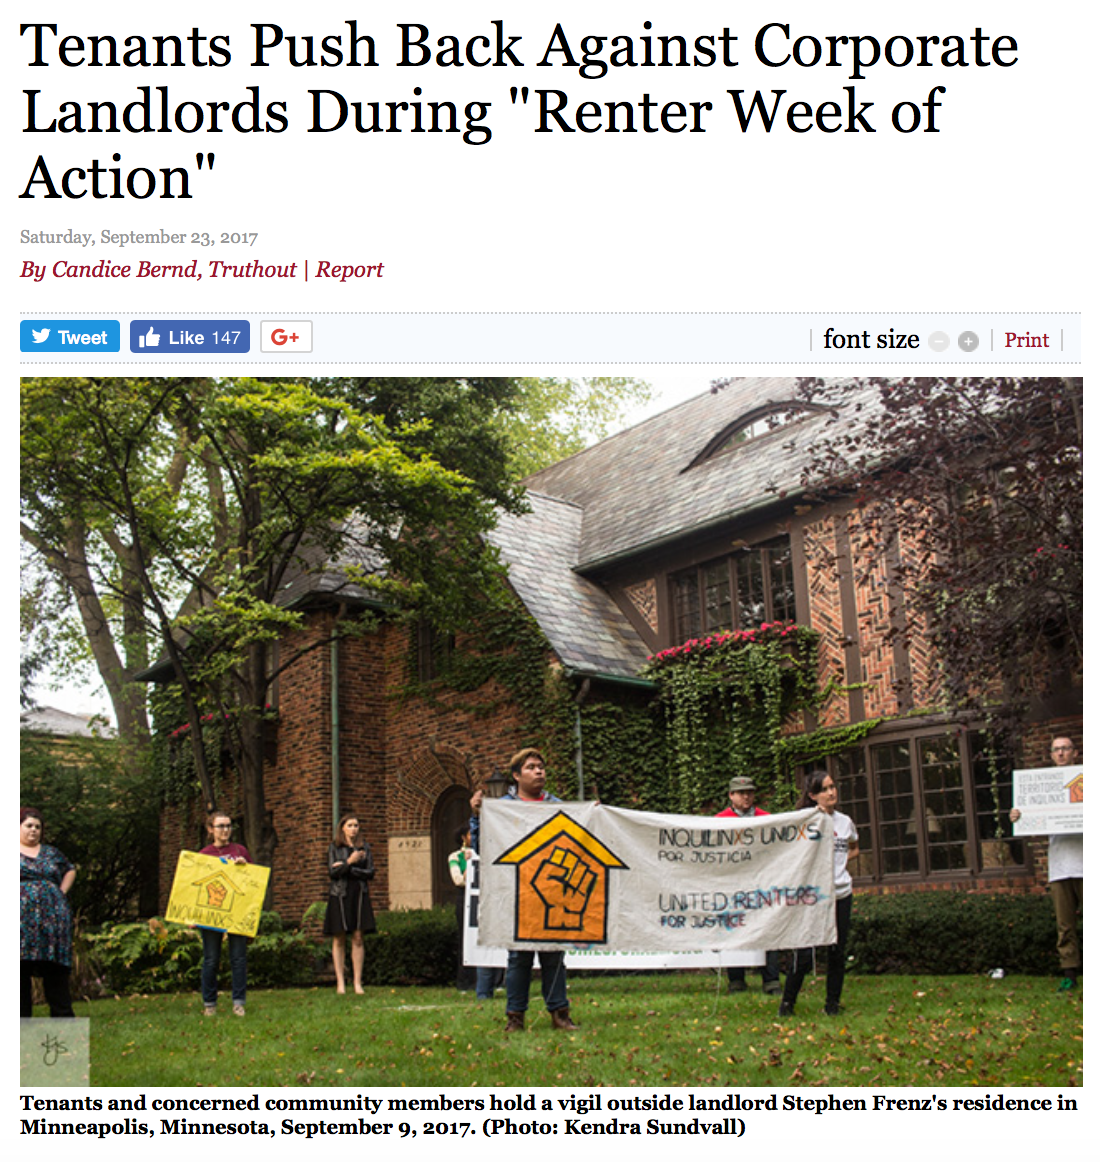 Truthout article on Renter Week of Action